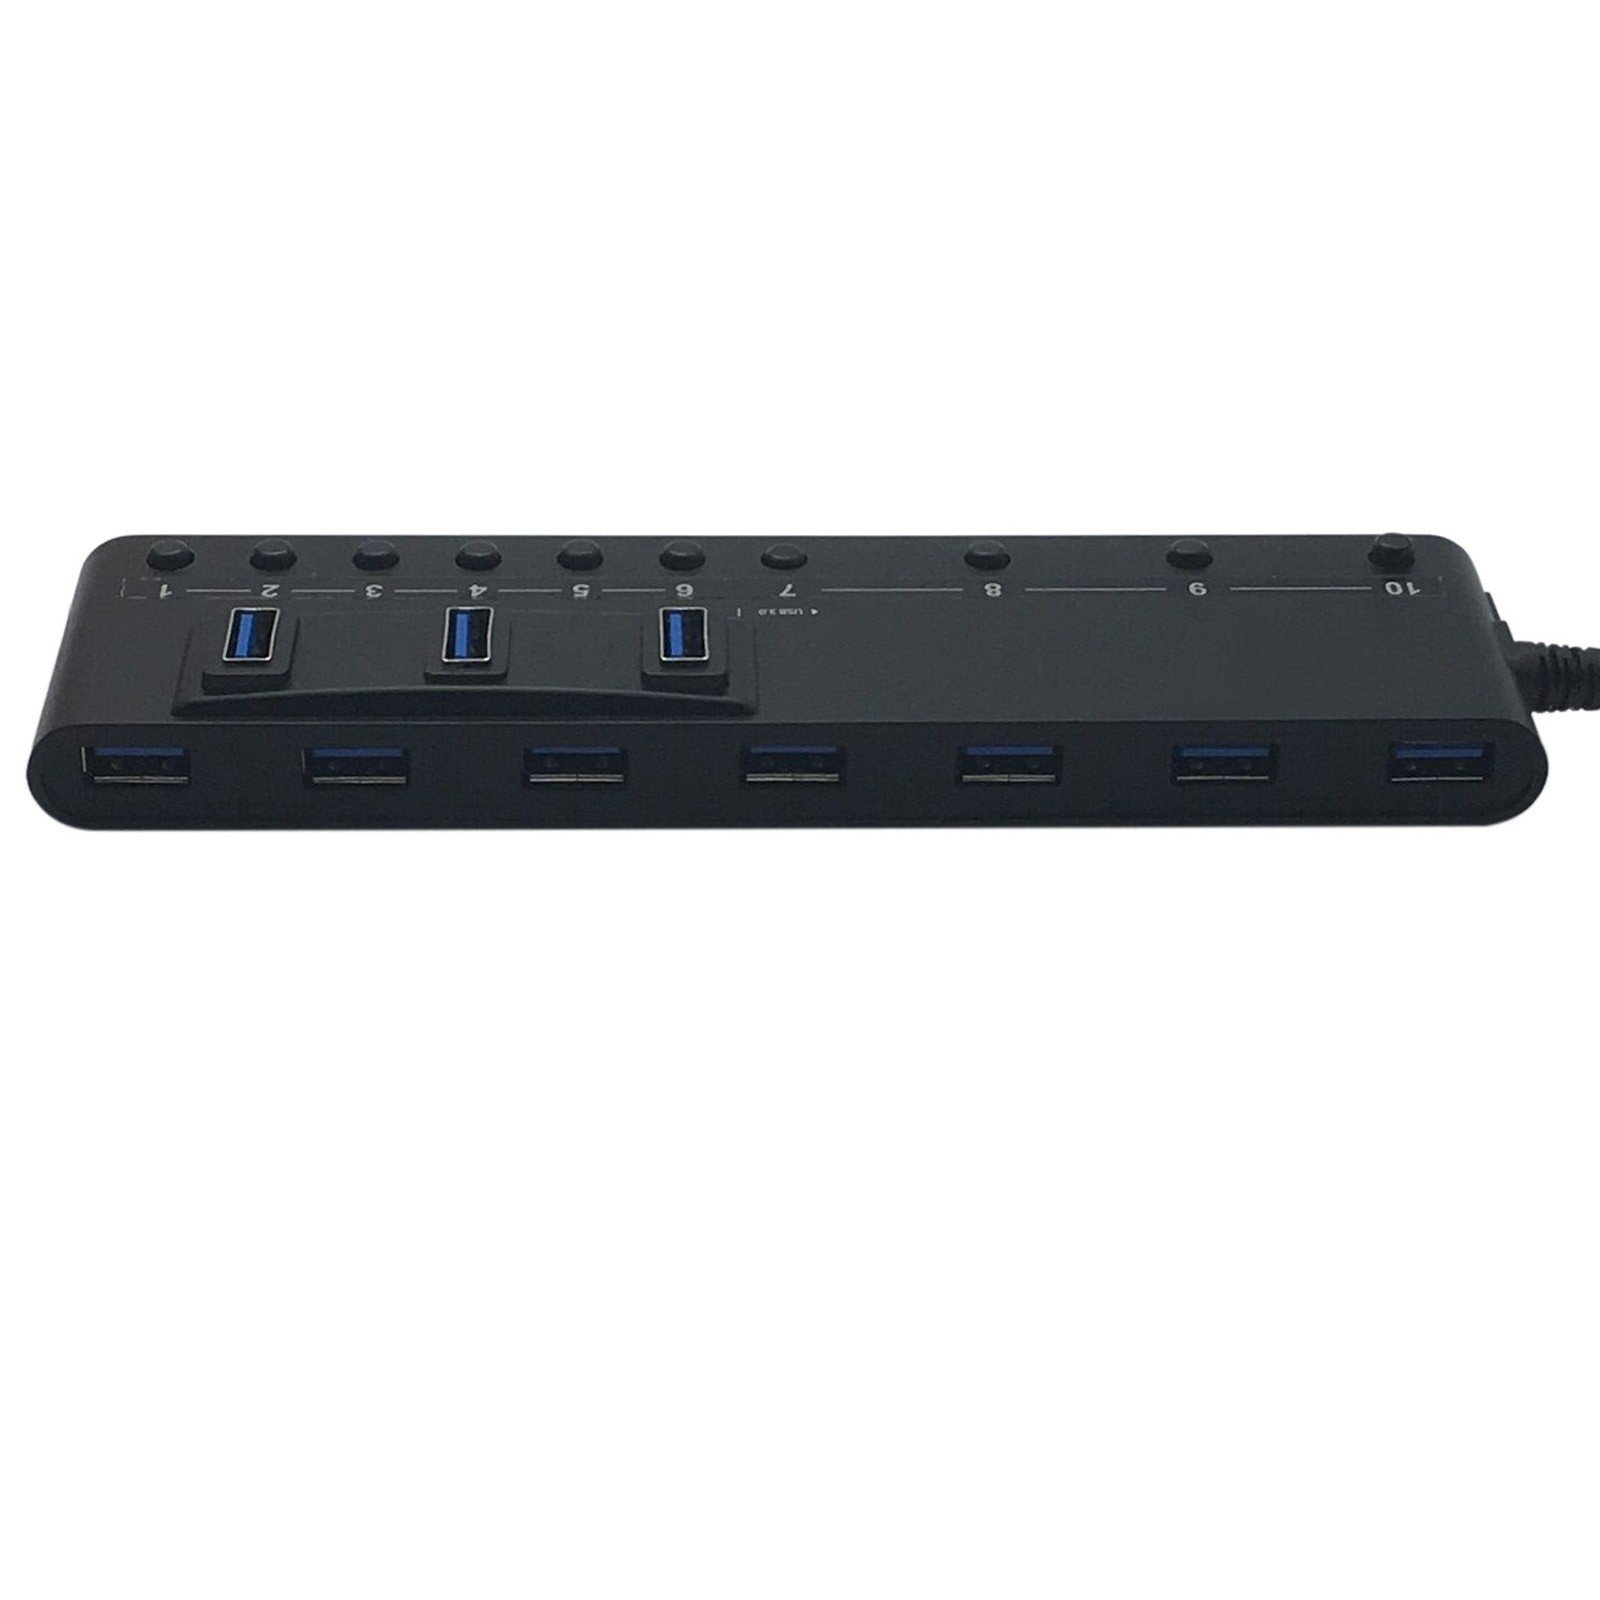 HornetTek 10-Port USB 3.0 Hub 5 Gbps Max with Individual On / Off Switches